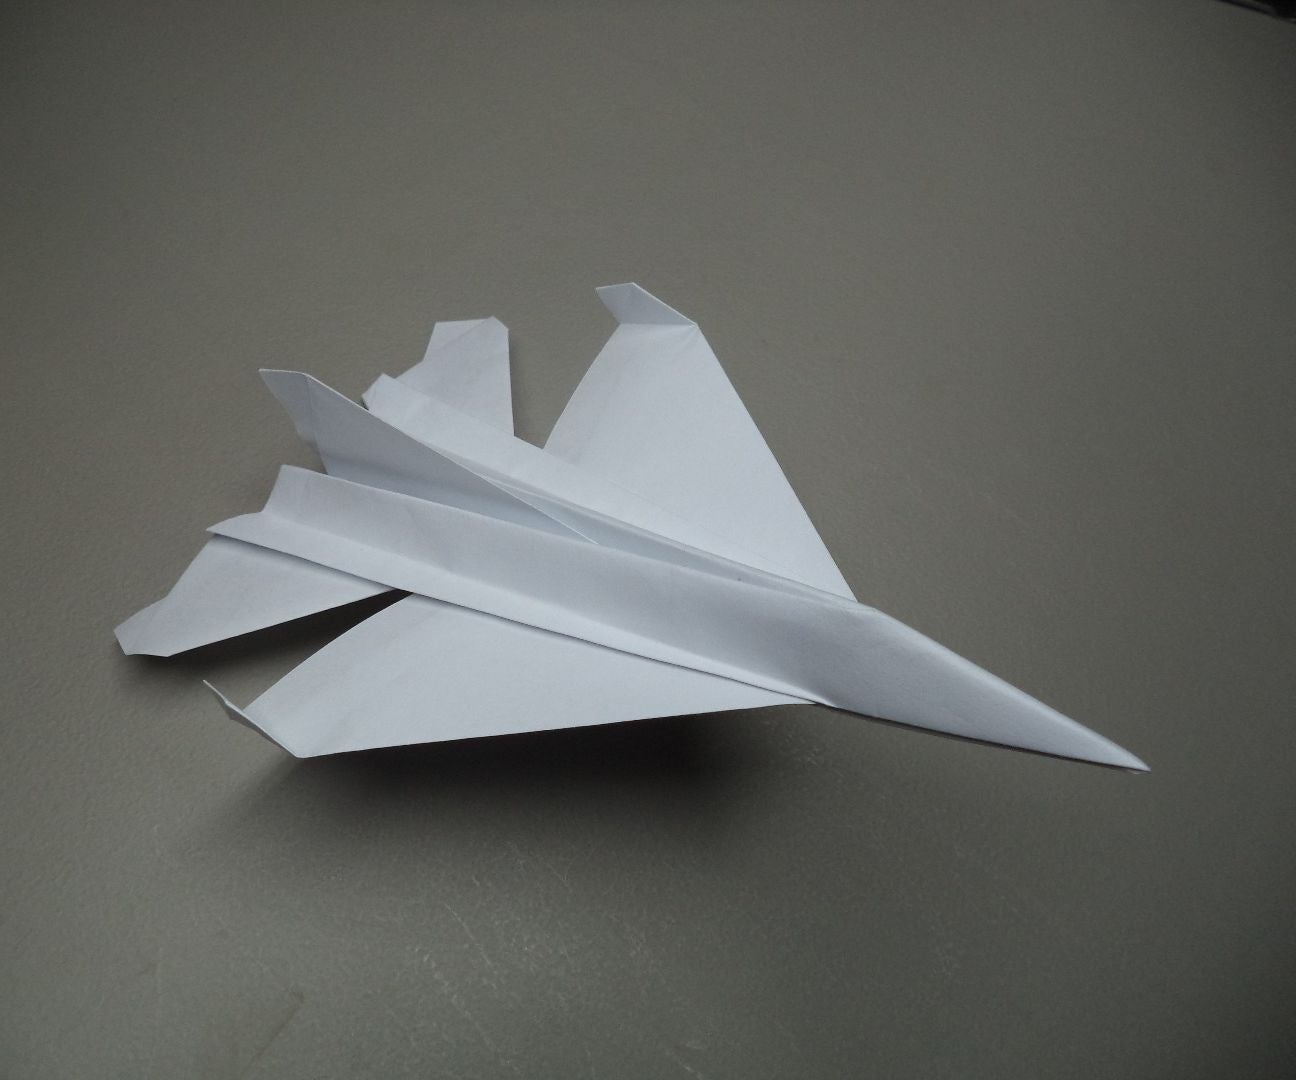 How to make a simple origami airplane (fighter jet plane): page 1 | 1080x1296